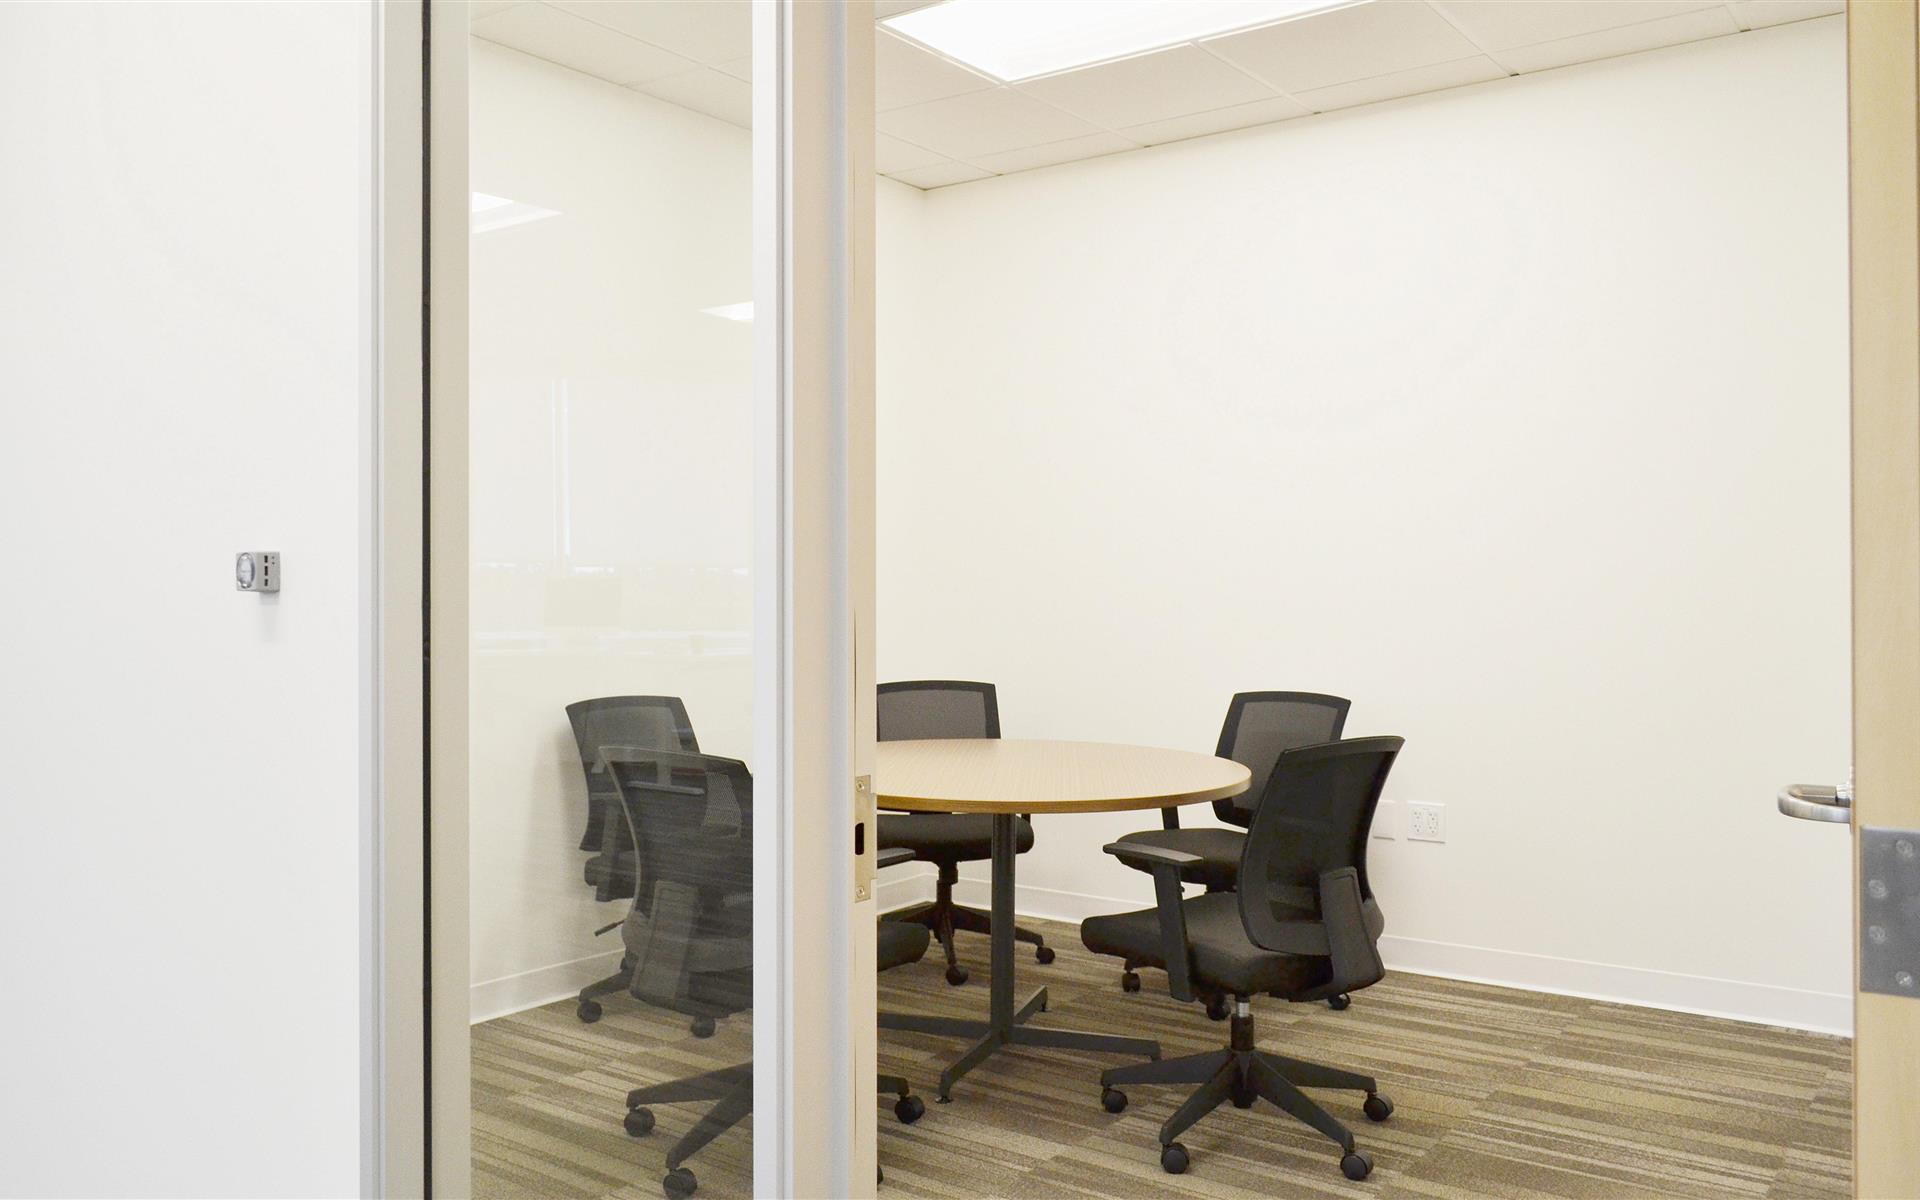 RobotX Space - Meeting Room 1